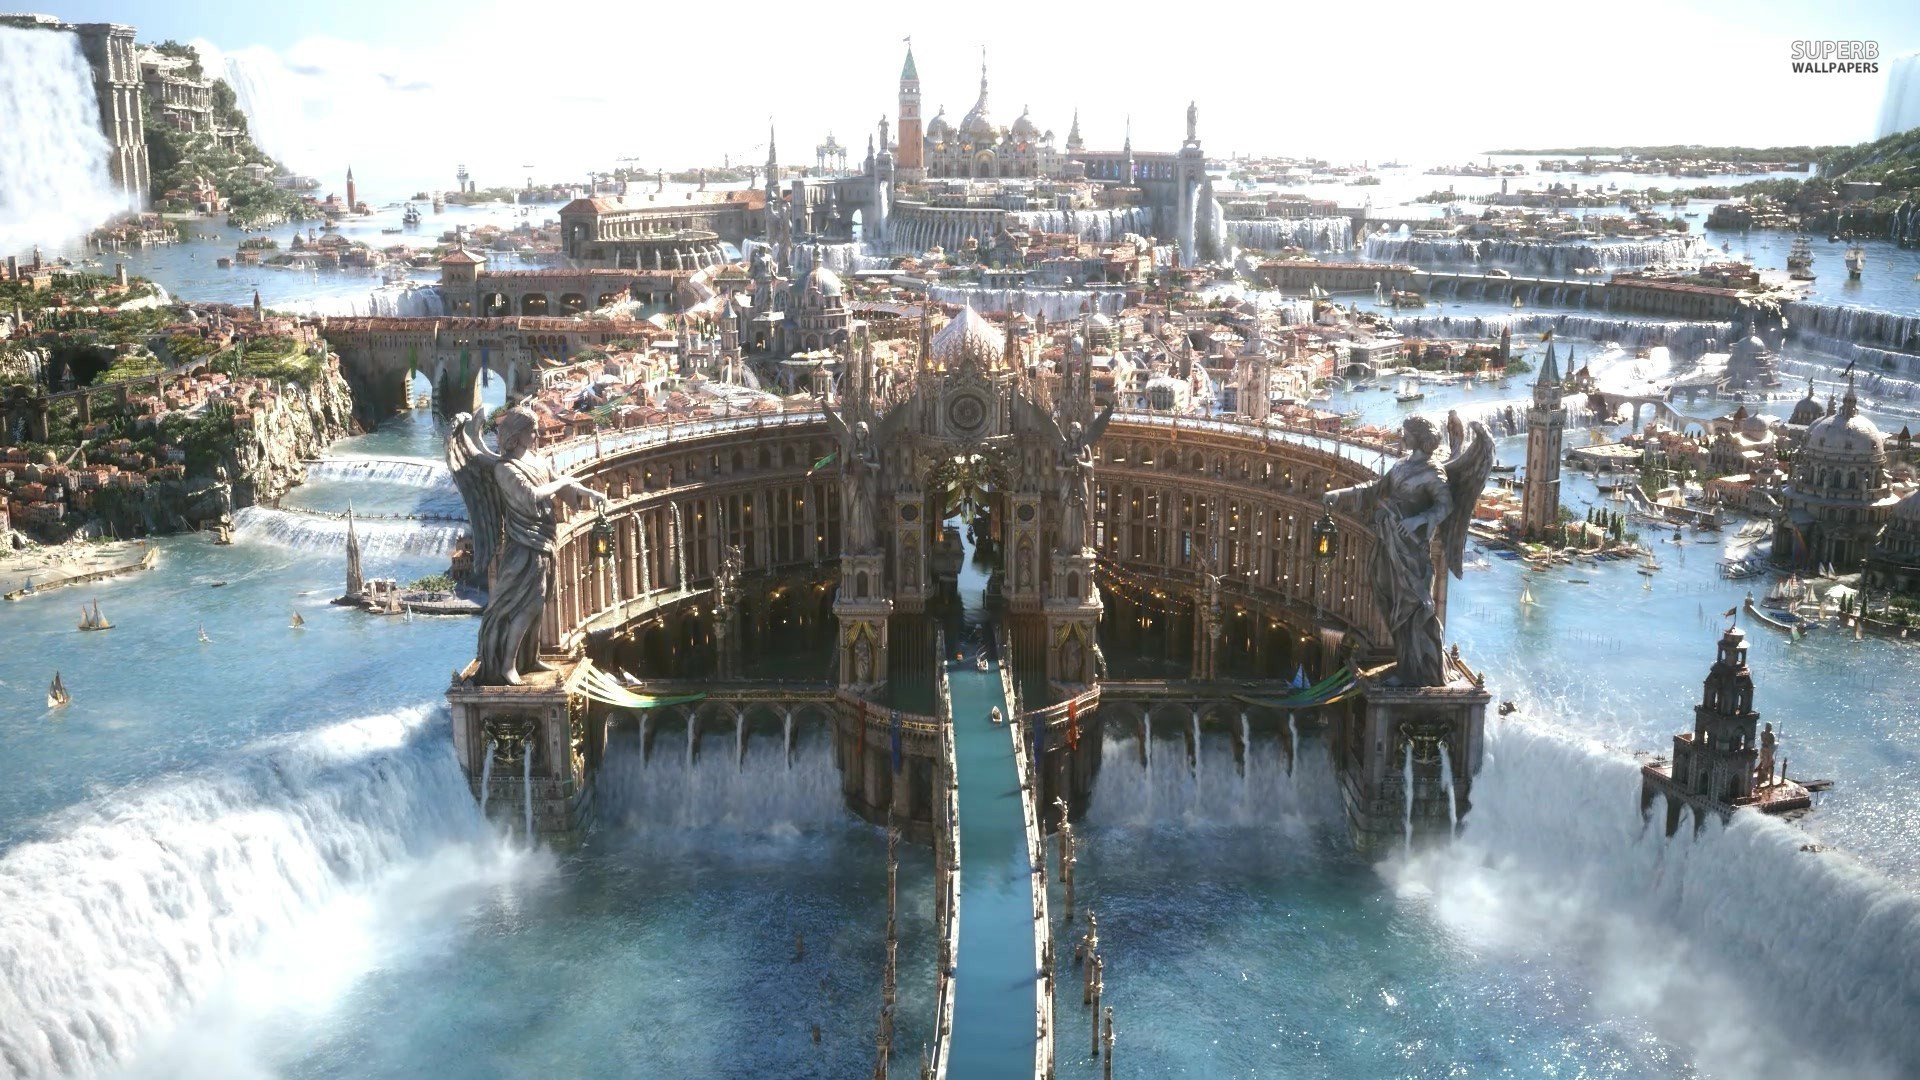 background - Final Fantasy XV: Kingsglaive má nový trailer